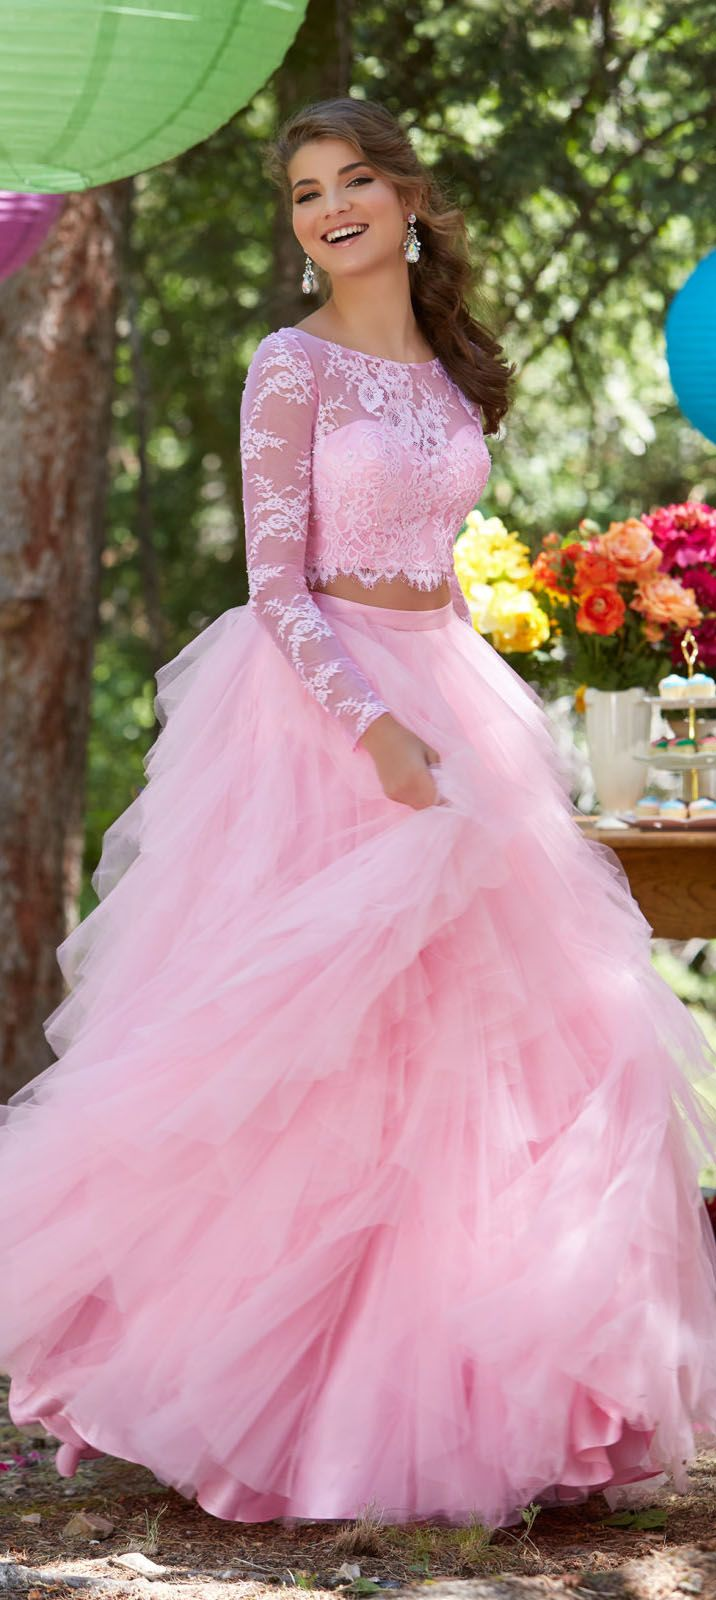 25 Best Ideas about Pink Lace on Pinterest  Pink lace dresses Pink dresses and Cute formal